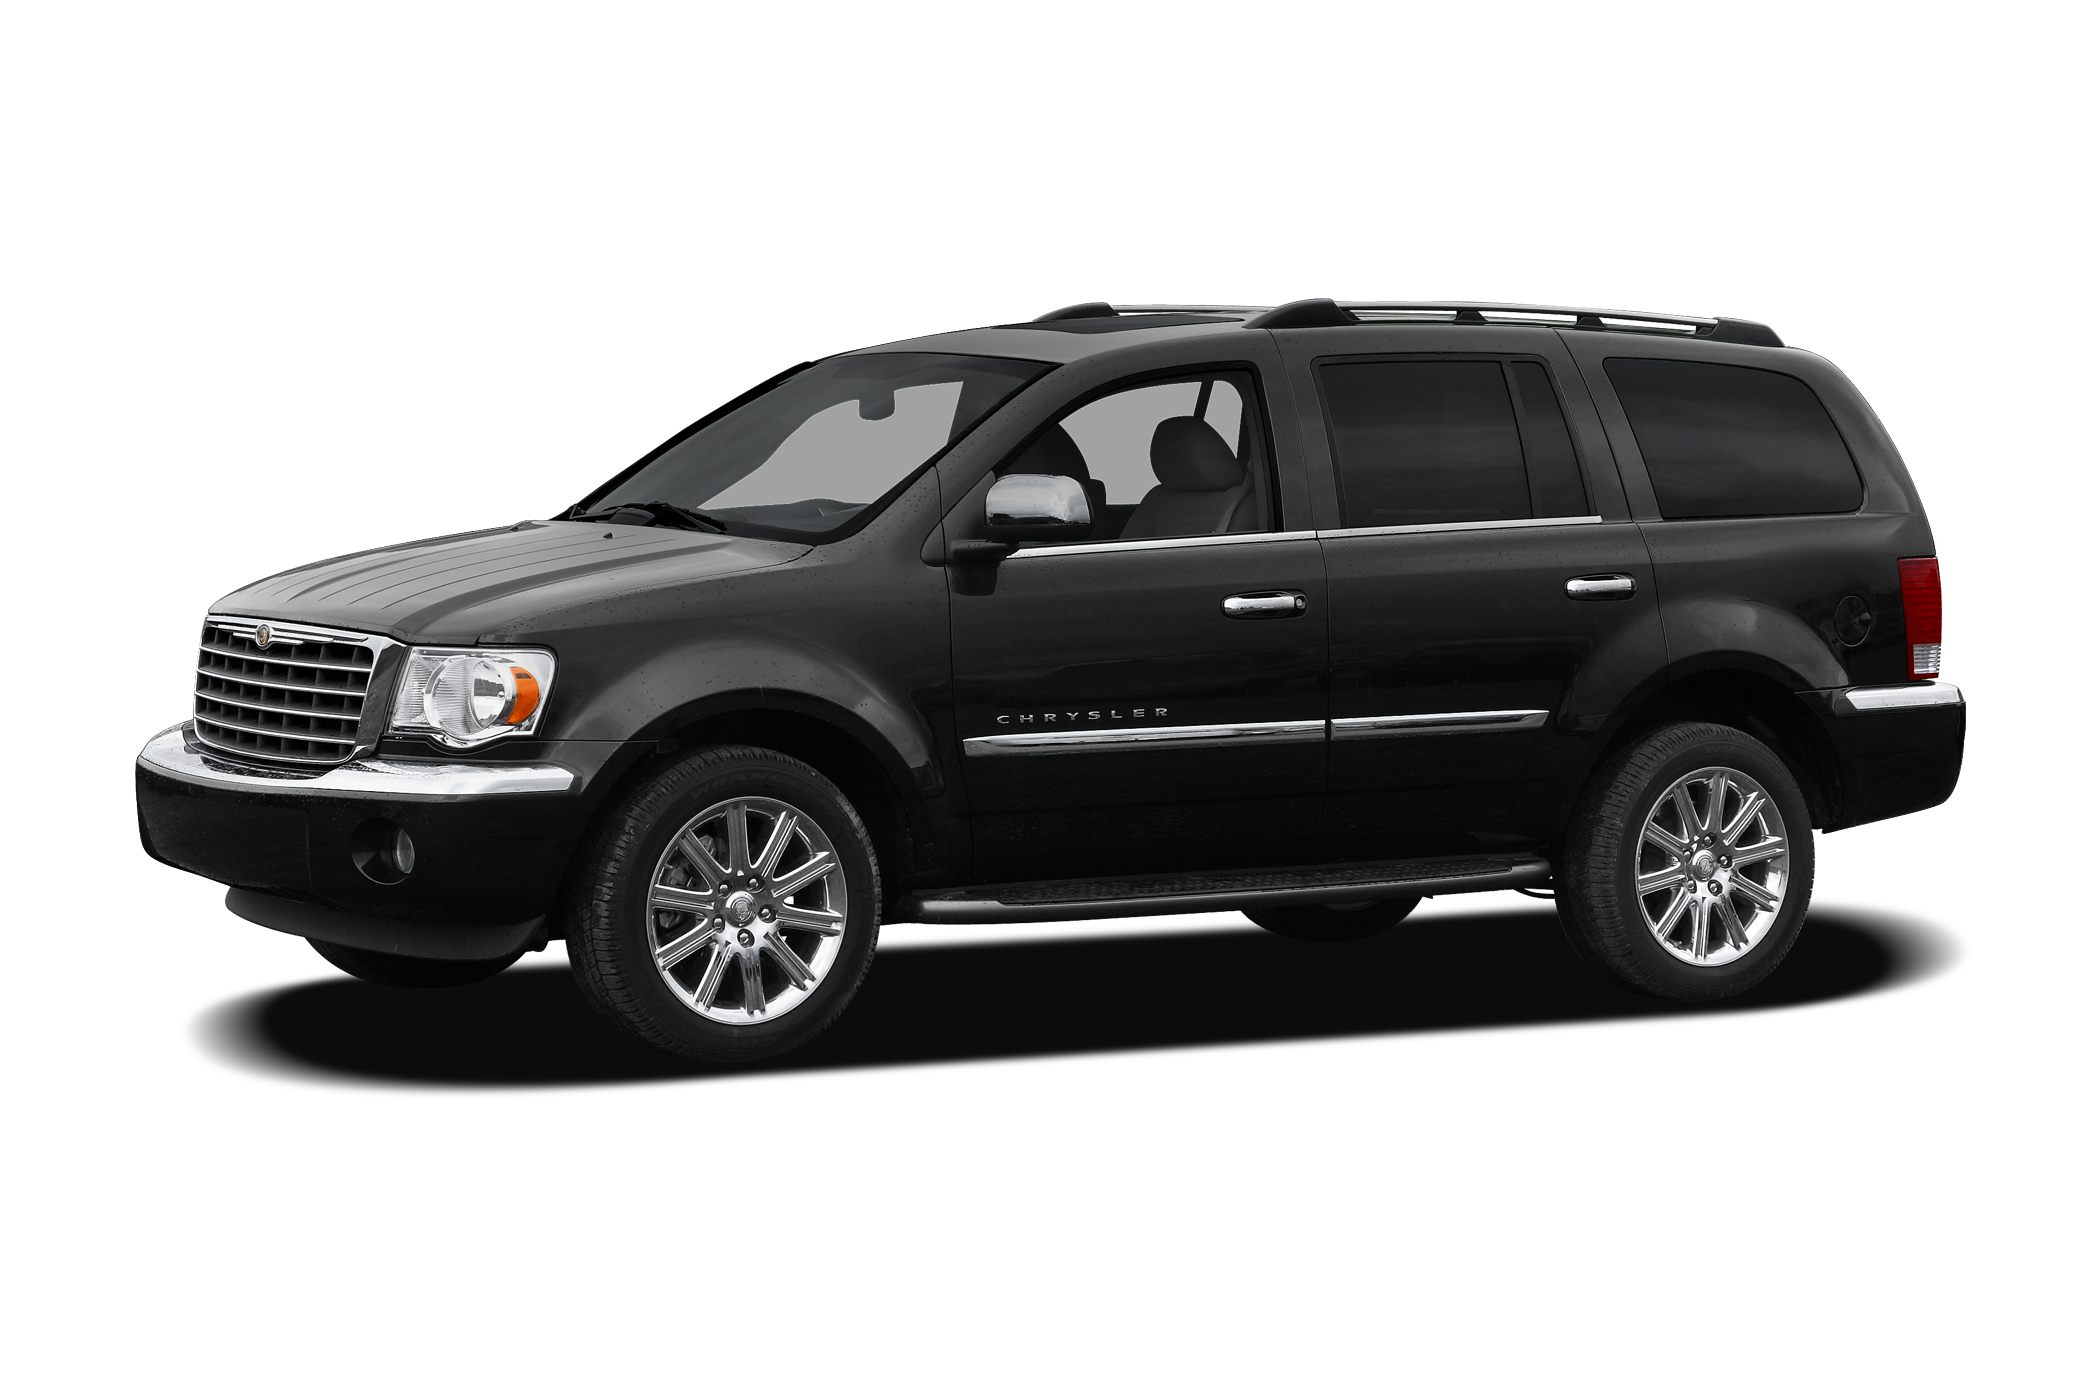 2007 Chrysler Aspen Limited Economic and cost-effective this 2007 Chrysler Aspen Limited is power